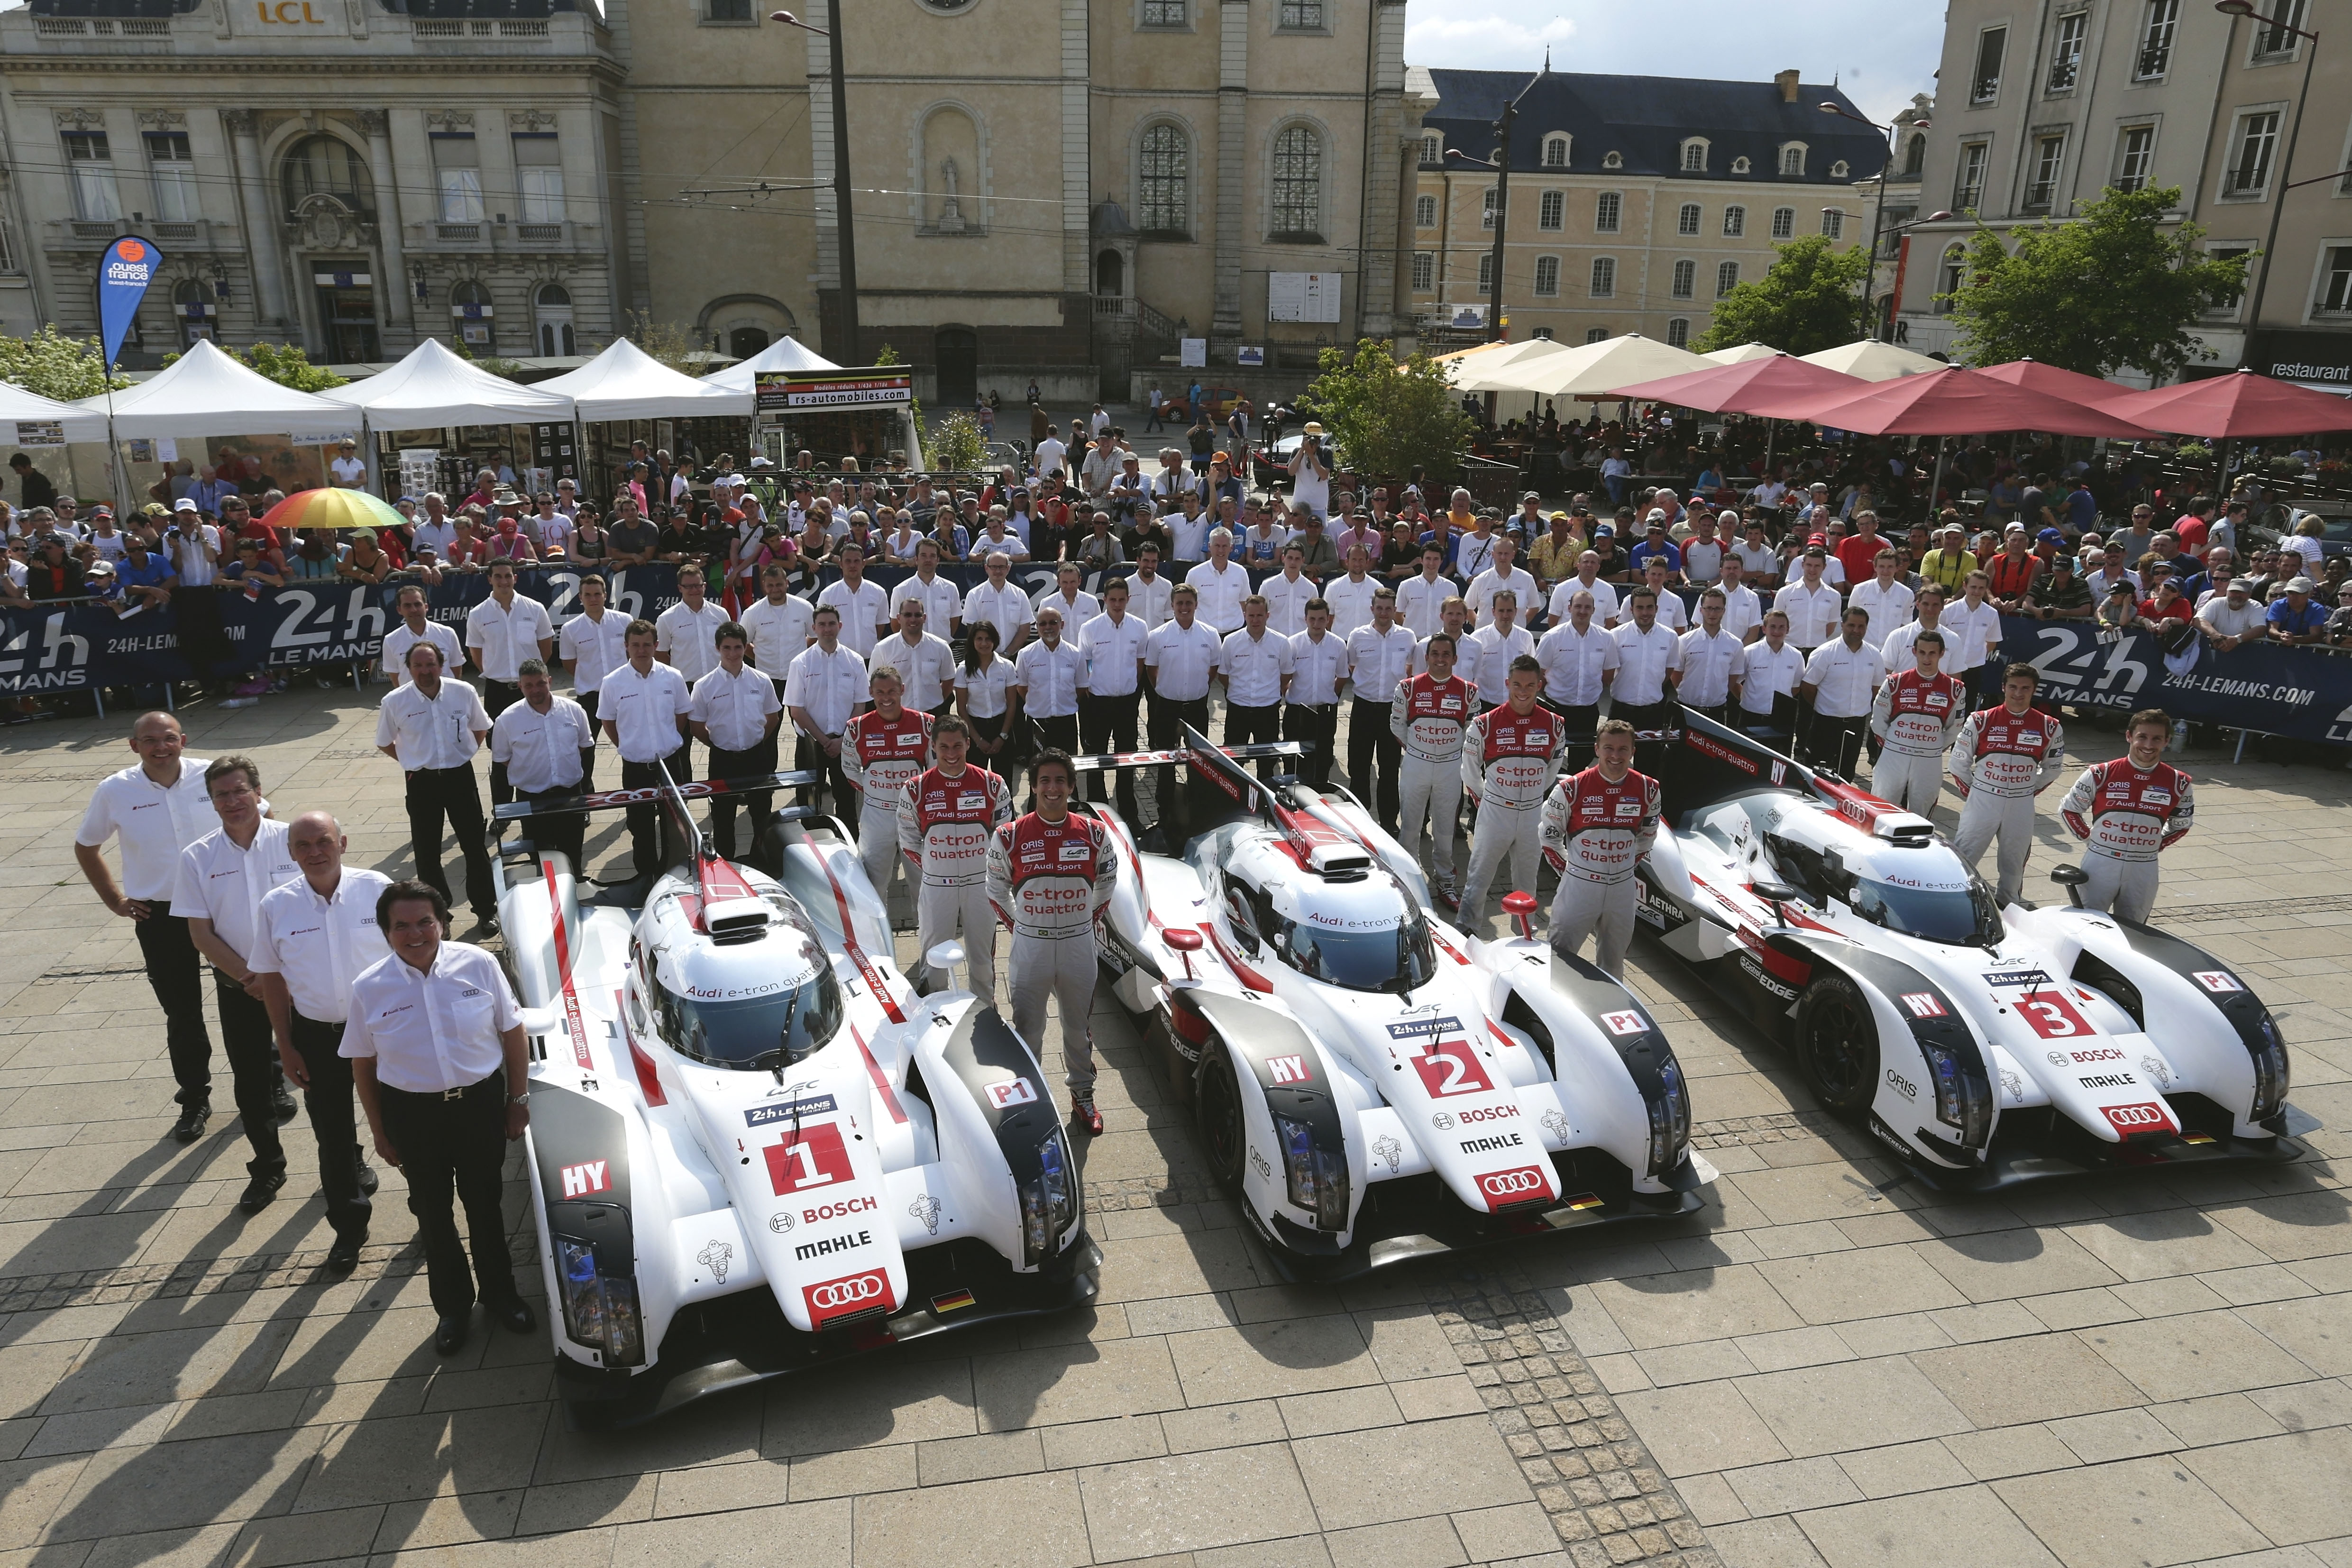 audi receives enthusiastic welcome at le mans build race party. Black Bedroom Furniture Sets. Home Design Ideas